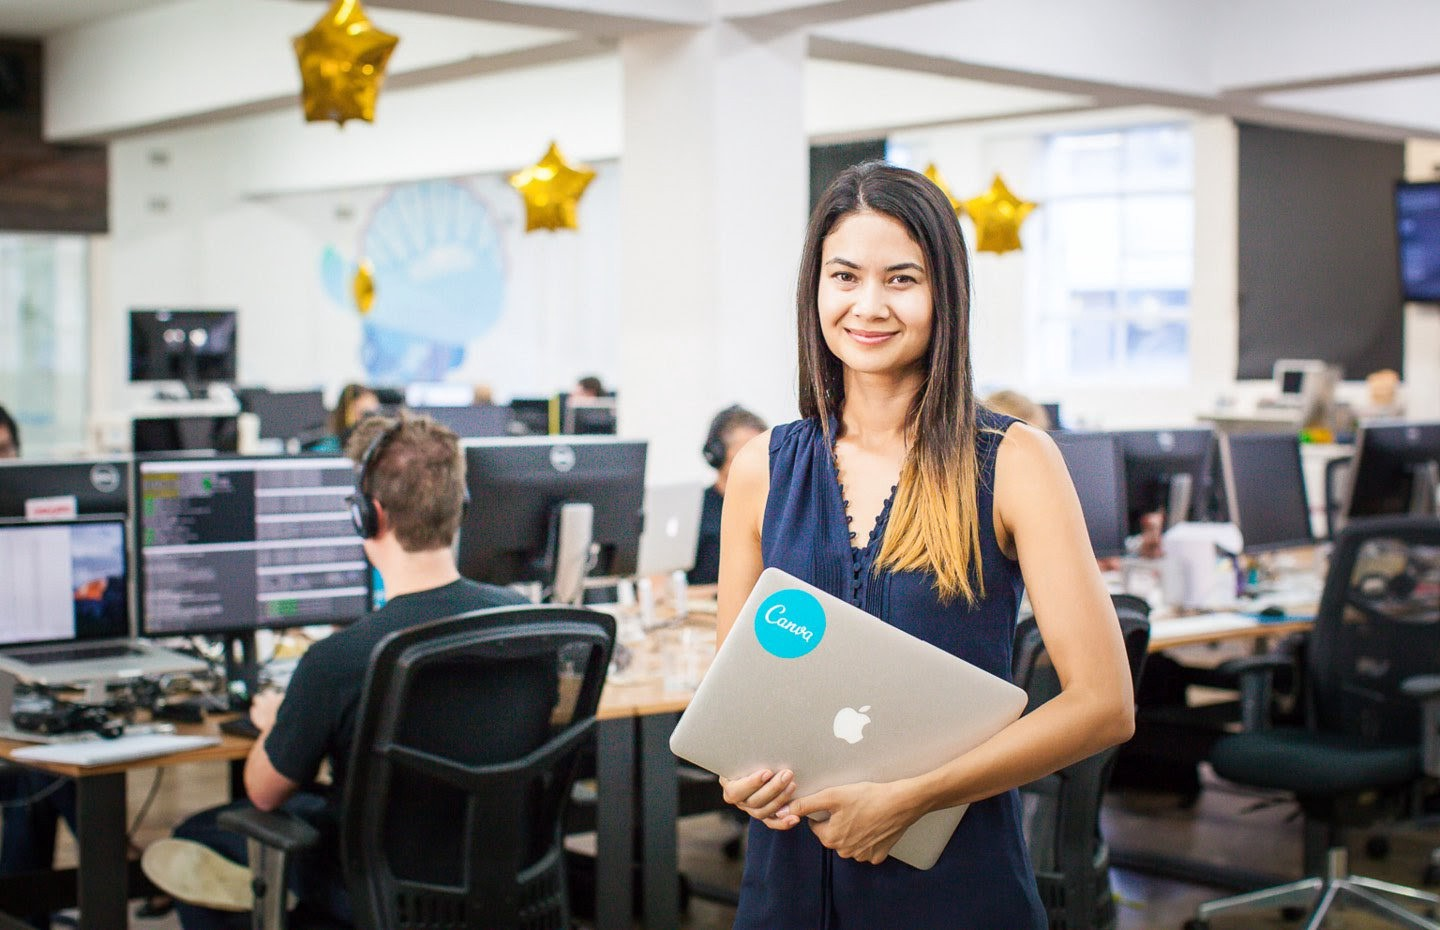 Startup Series Funding: Everything You Need To Know - Canva CEO Melanie Perkins